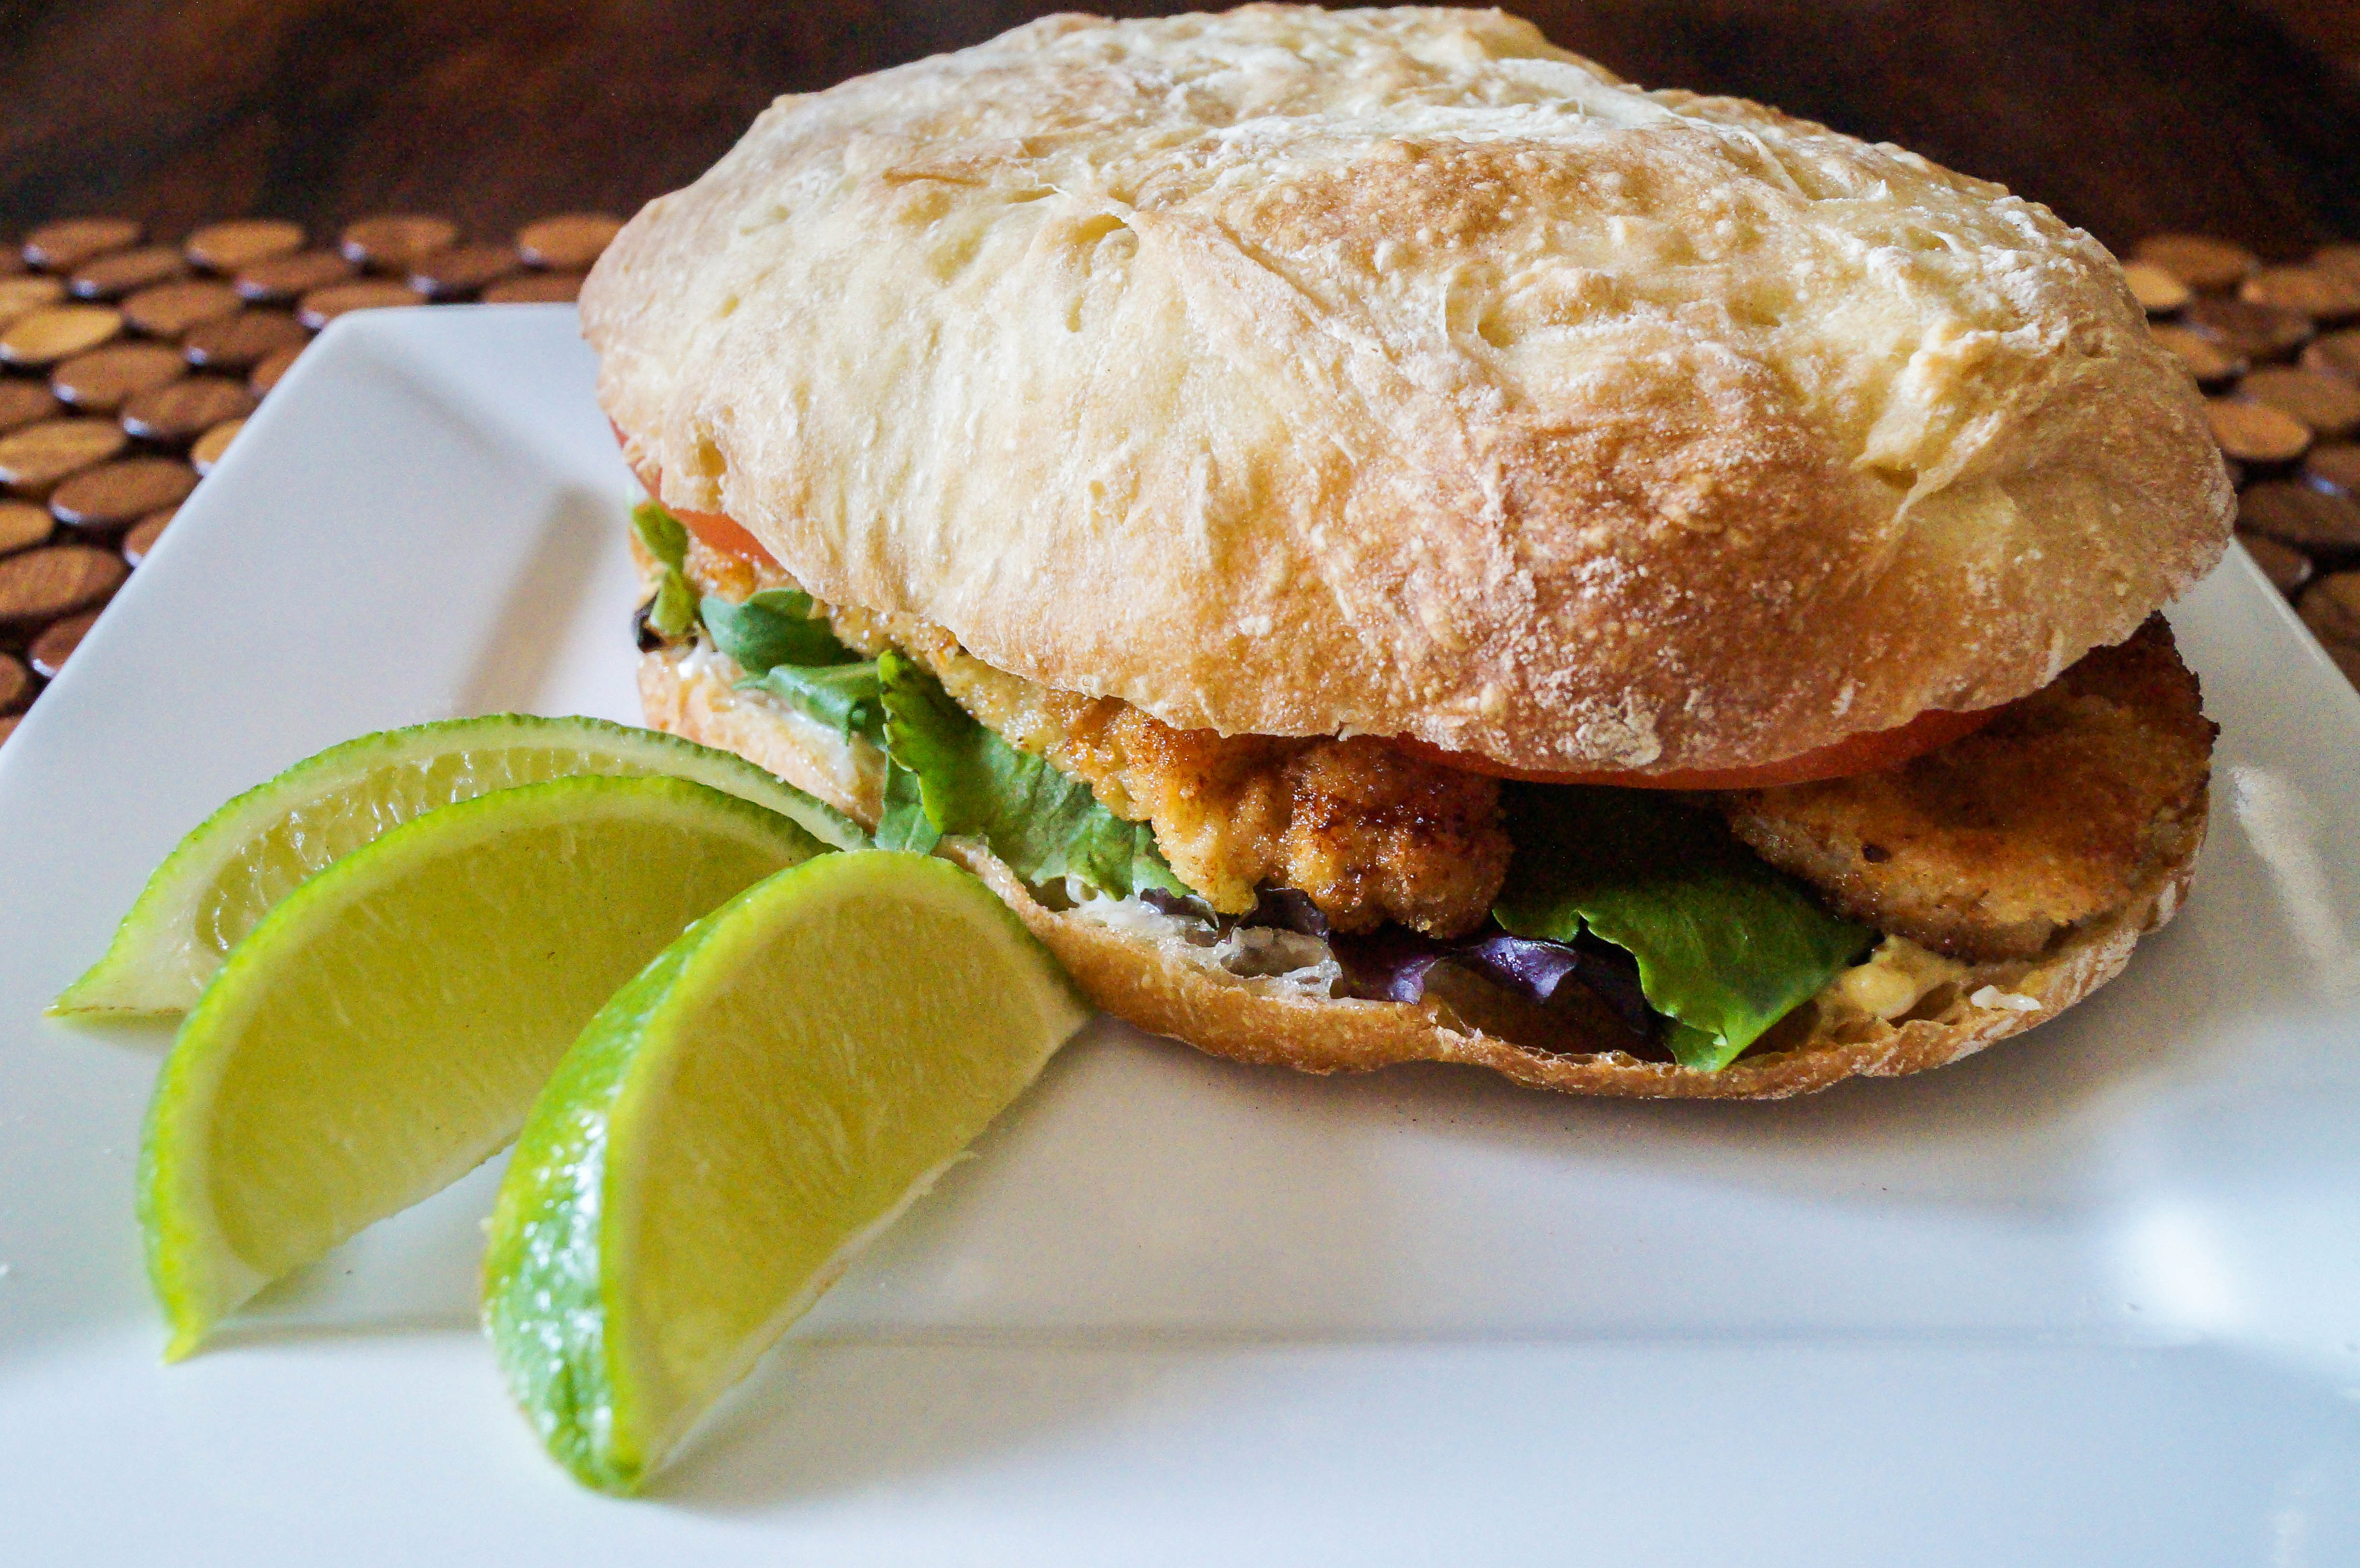 Pan con Milanesa (Argentinian Sandwich with Breaded Veal Cutlet)